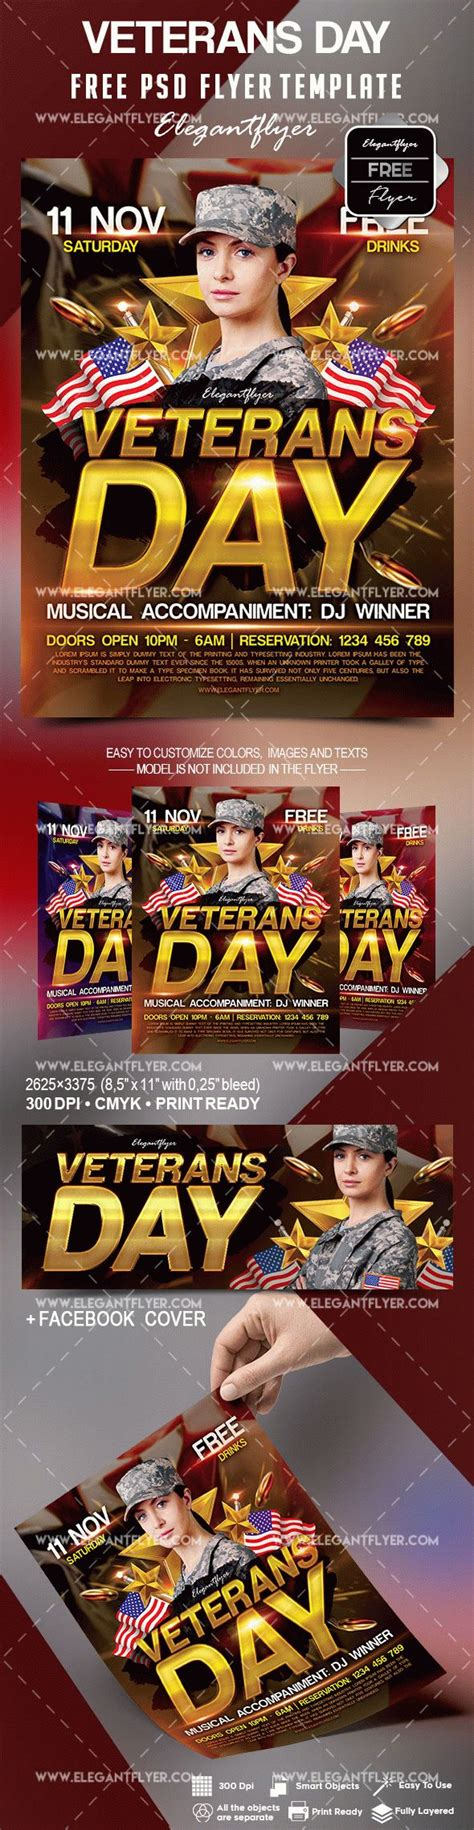 Free Veterans Day Flyer Template By Elegantflyer Day Flyer Template Free